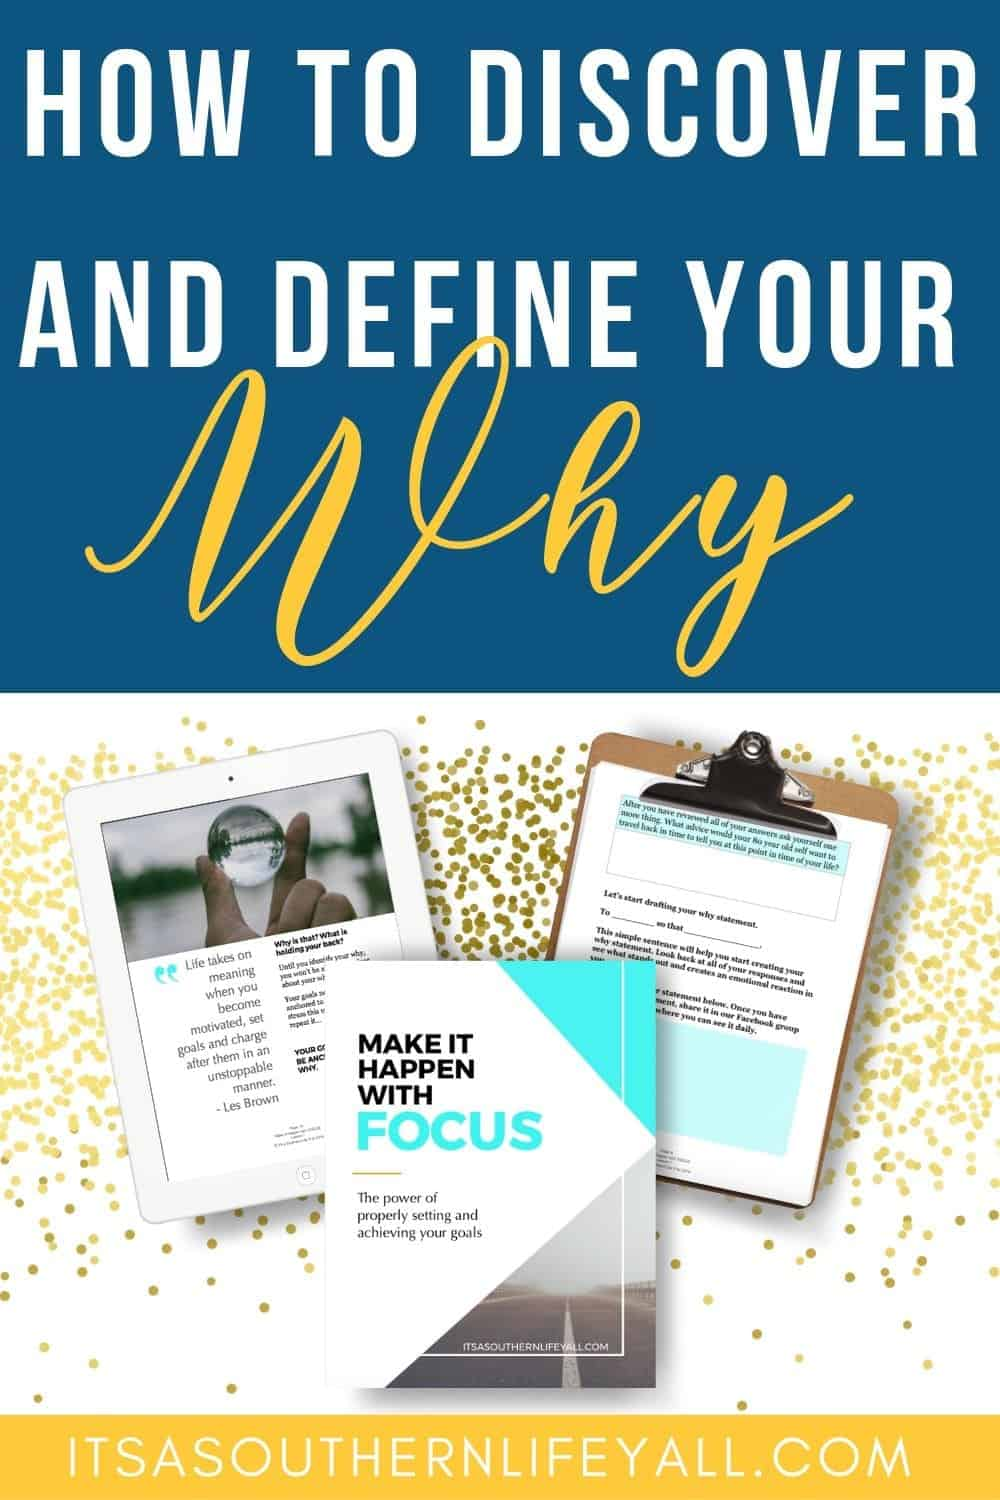 HOW TO DISCOVER AND DEFINE YOUR WHY